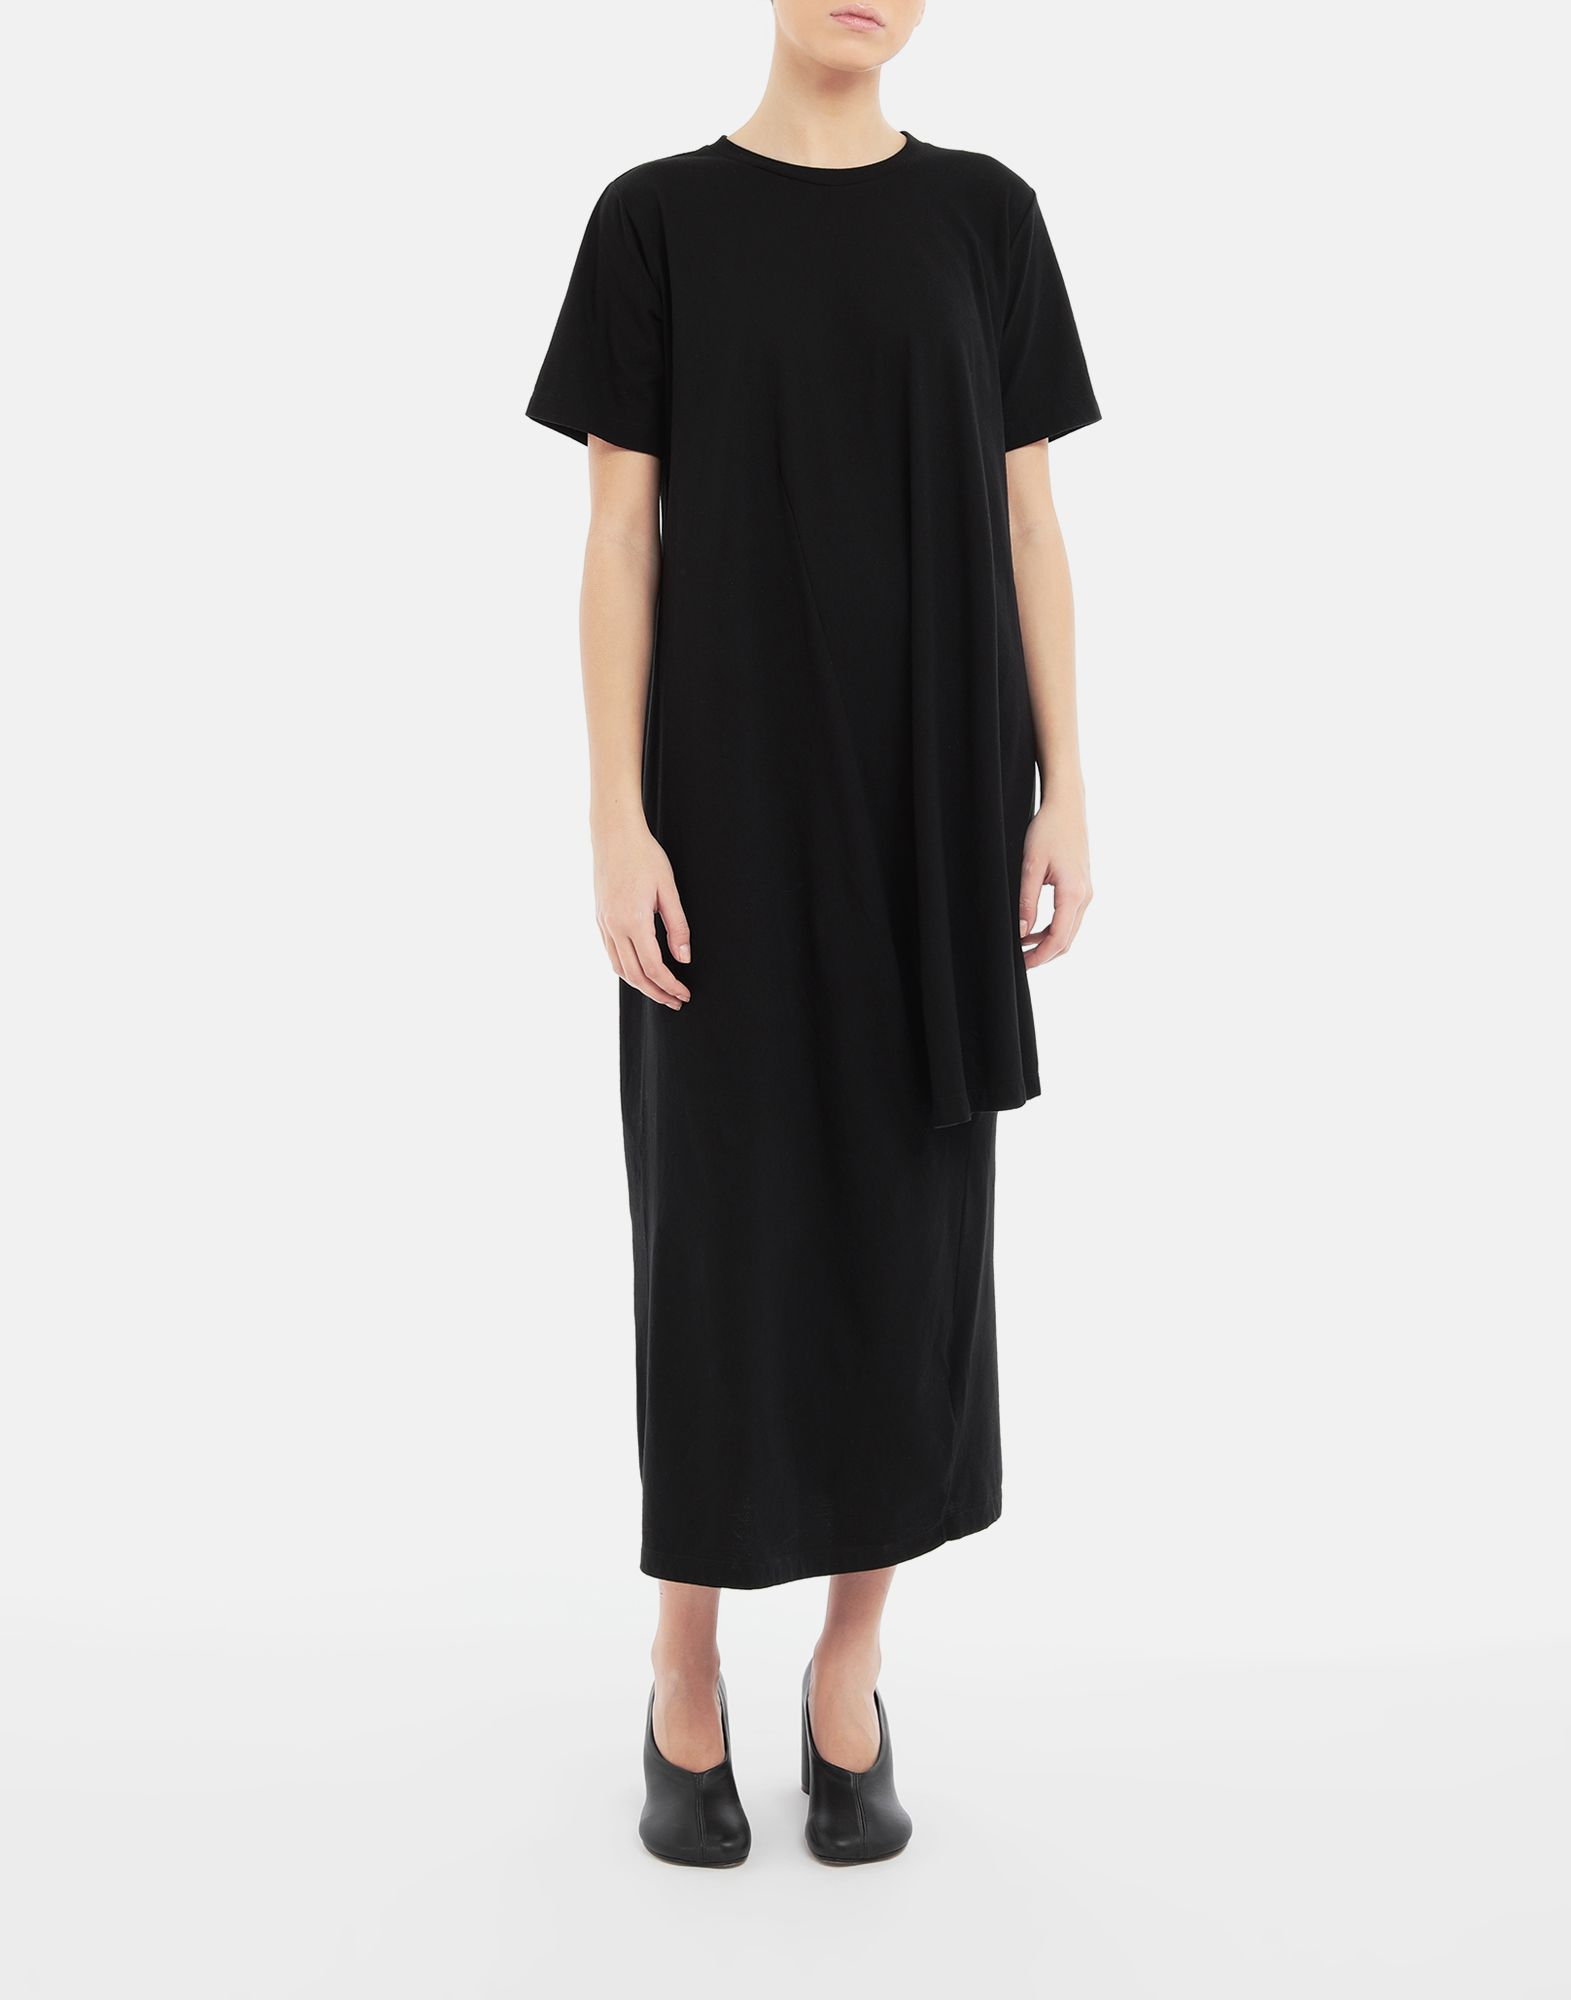 MM6 MAISON MARGIELA Layer dress 3/4 length dress Woman r